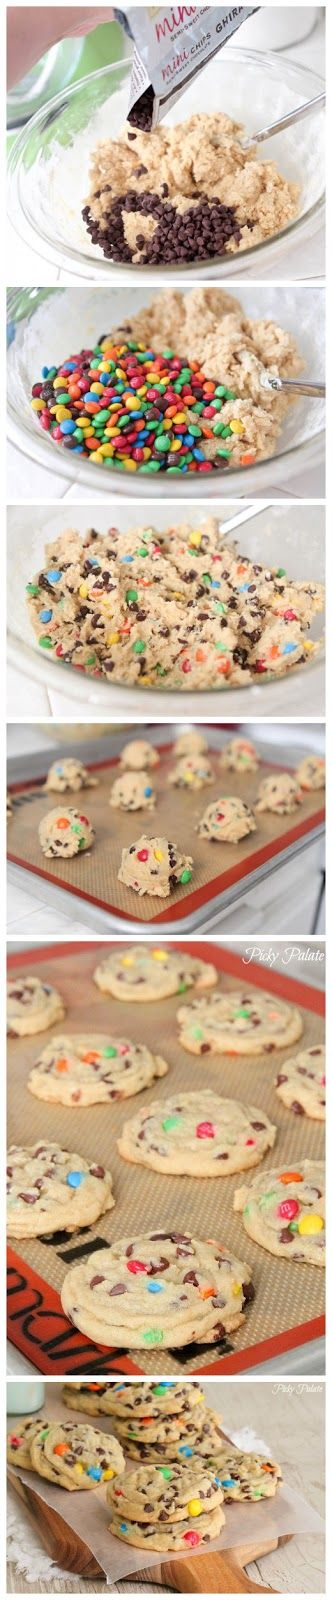 joysama images: How To Make Perfect M and M Cookies